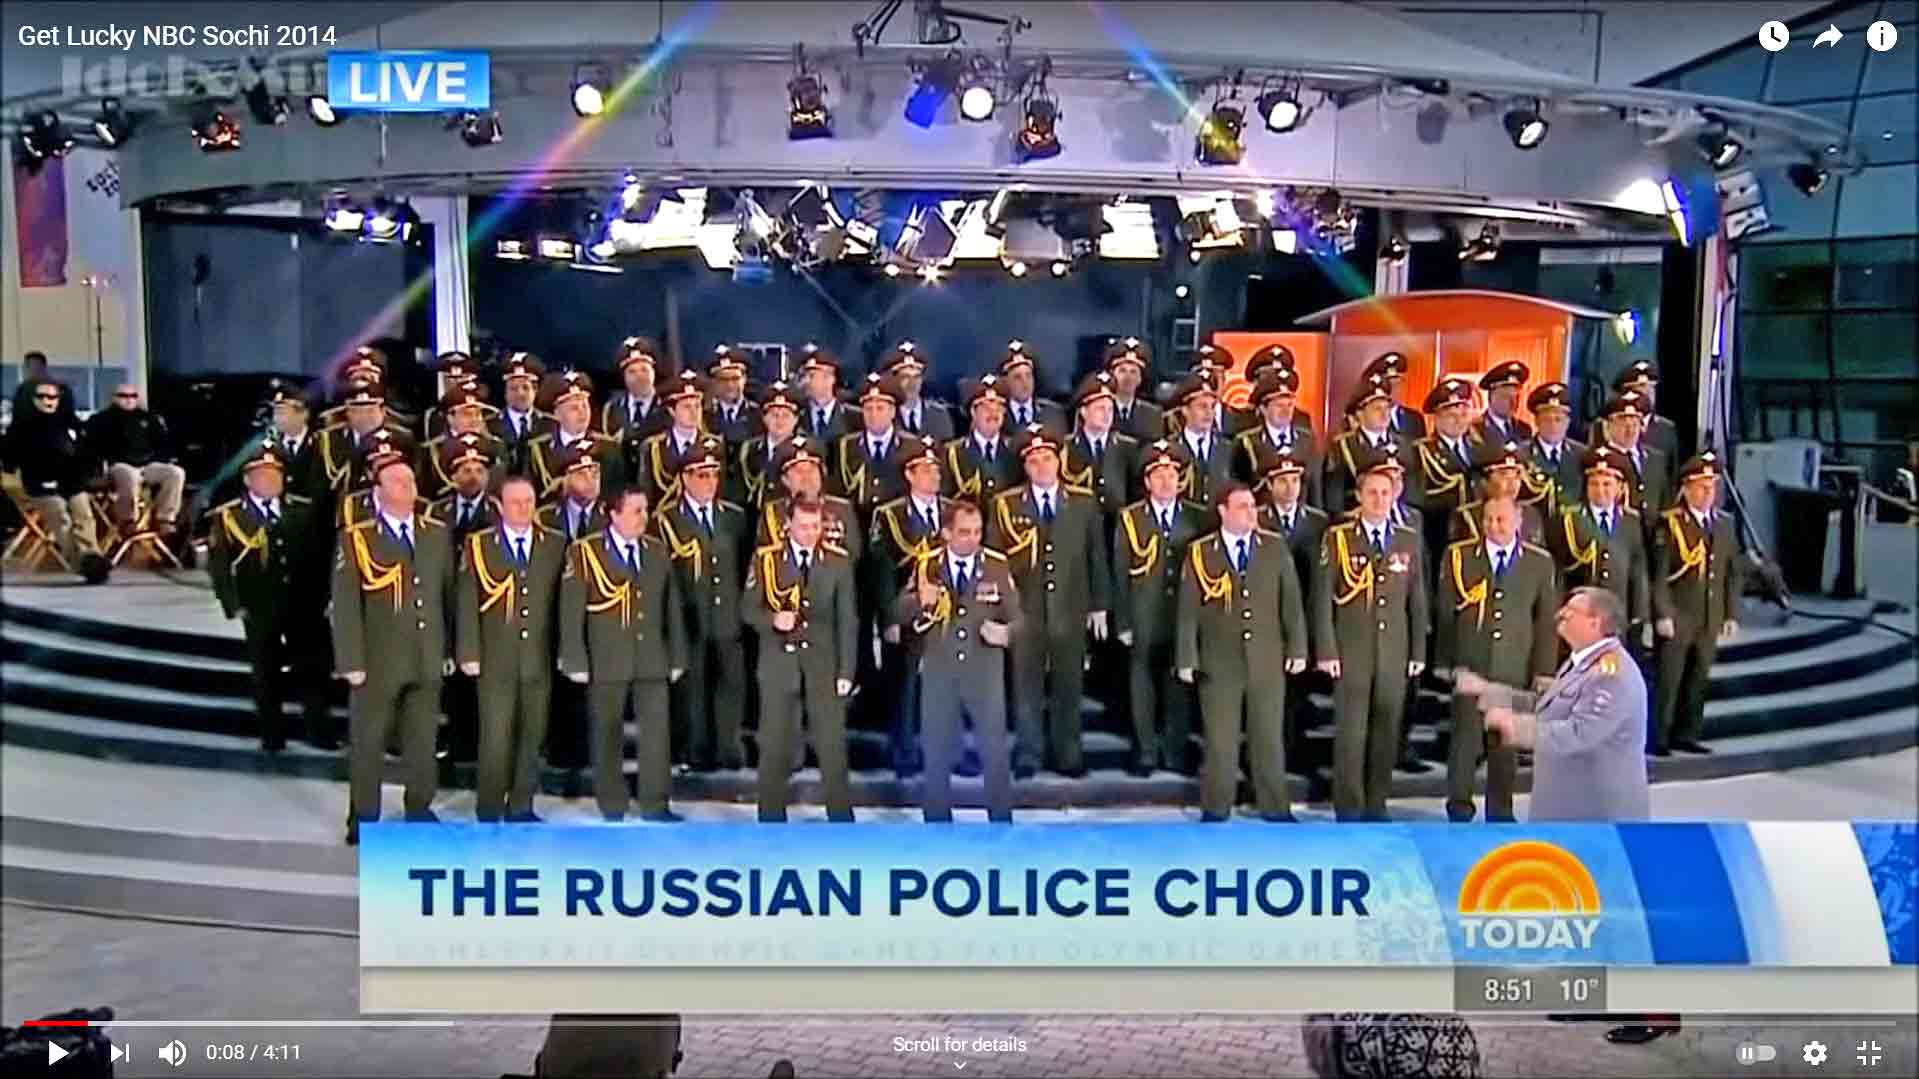 Russian Police Choir At The Sochi Winter Olympics 2014